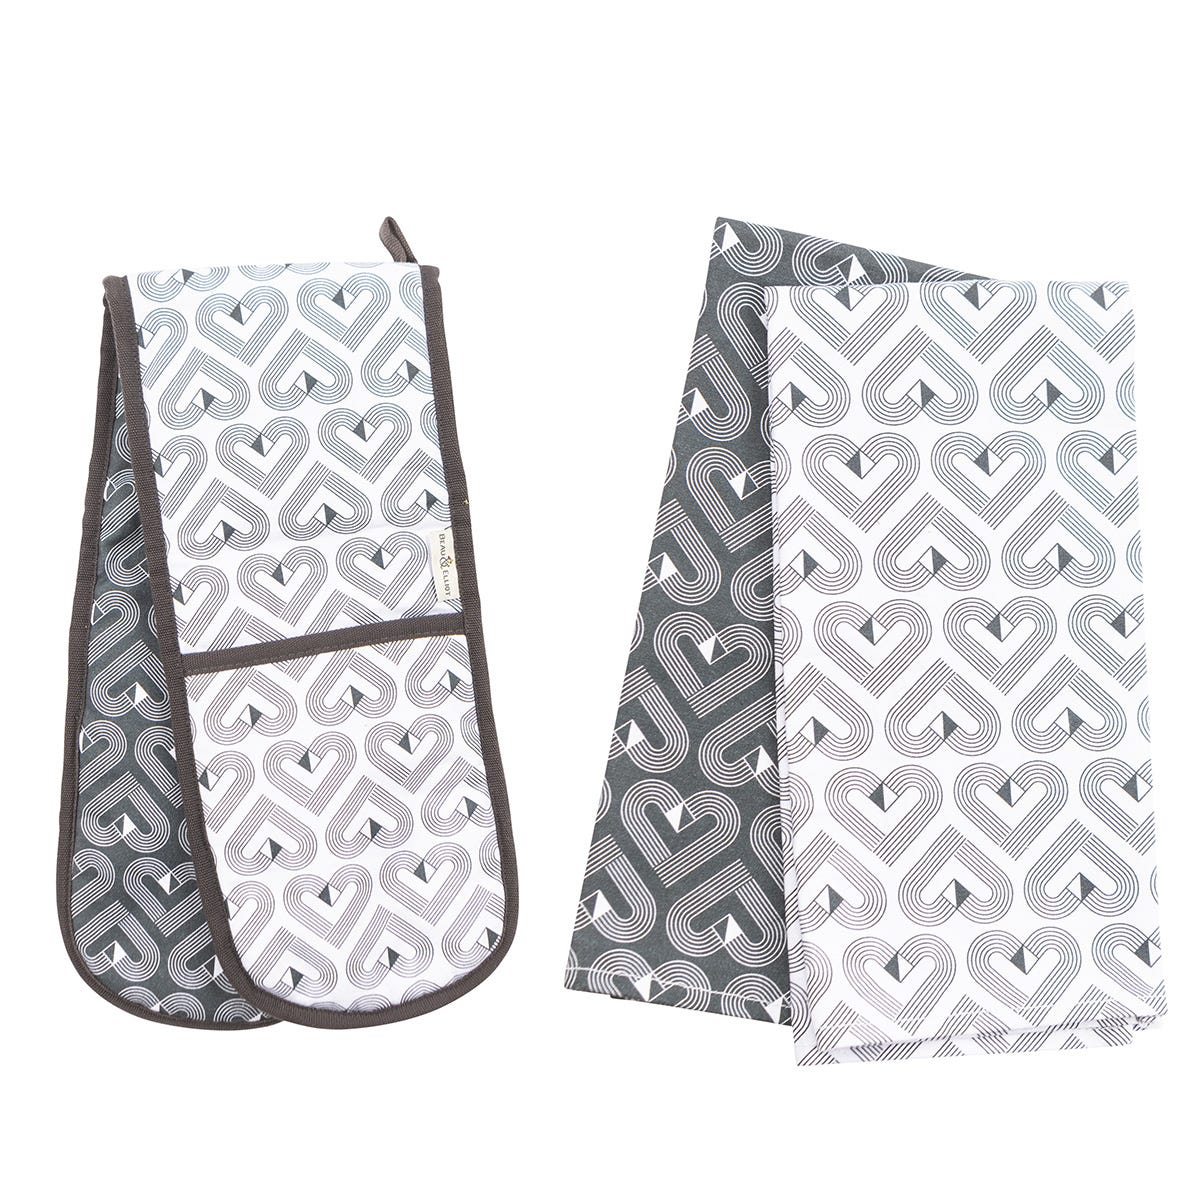 Beau & Elliot VIBE Set of Two Tea Towels and Double Oven Gloves - Slate/Chalk